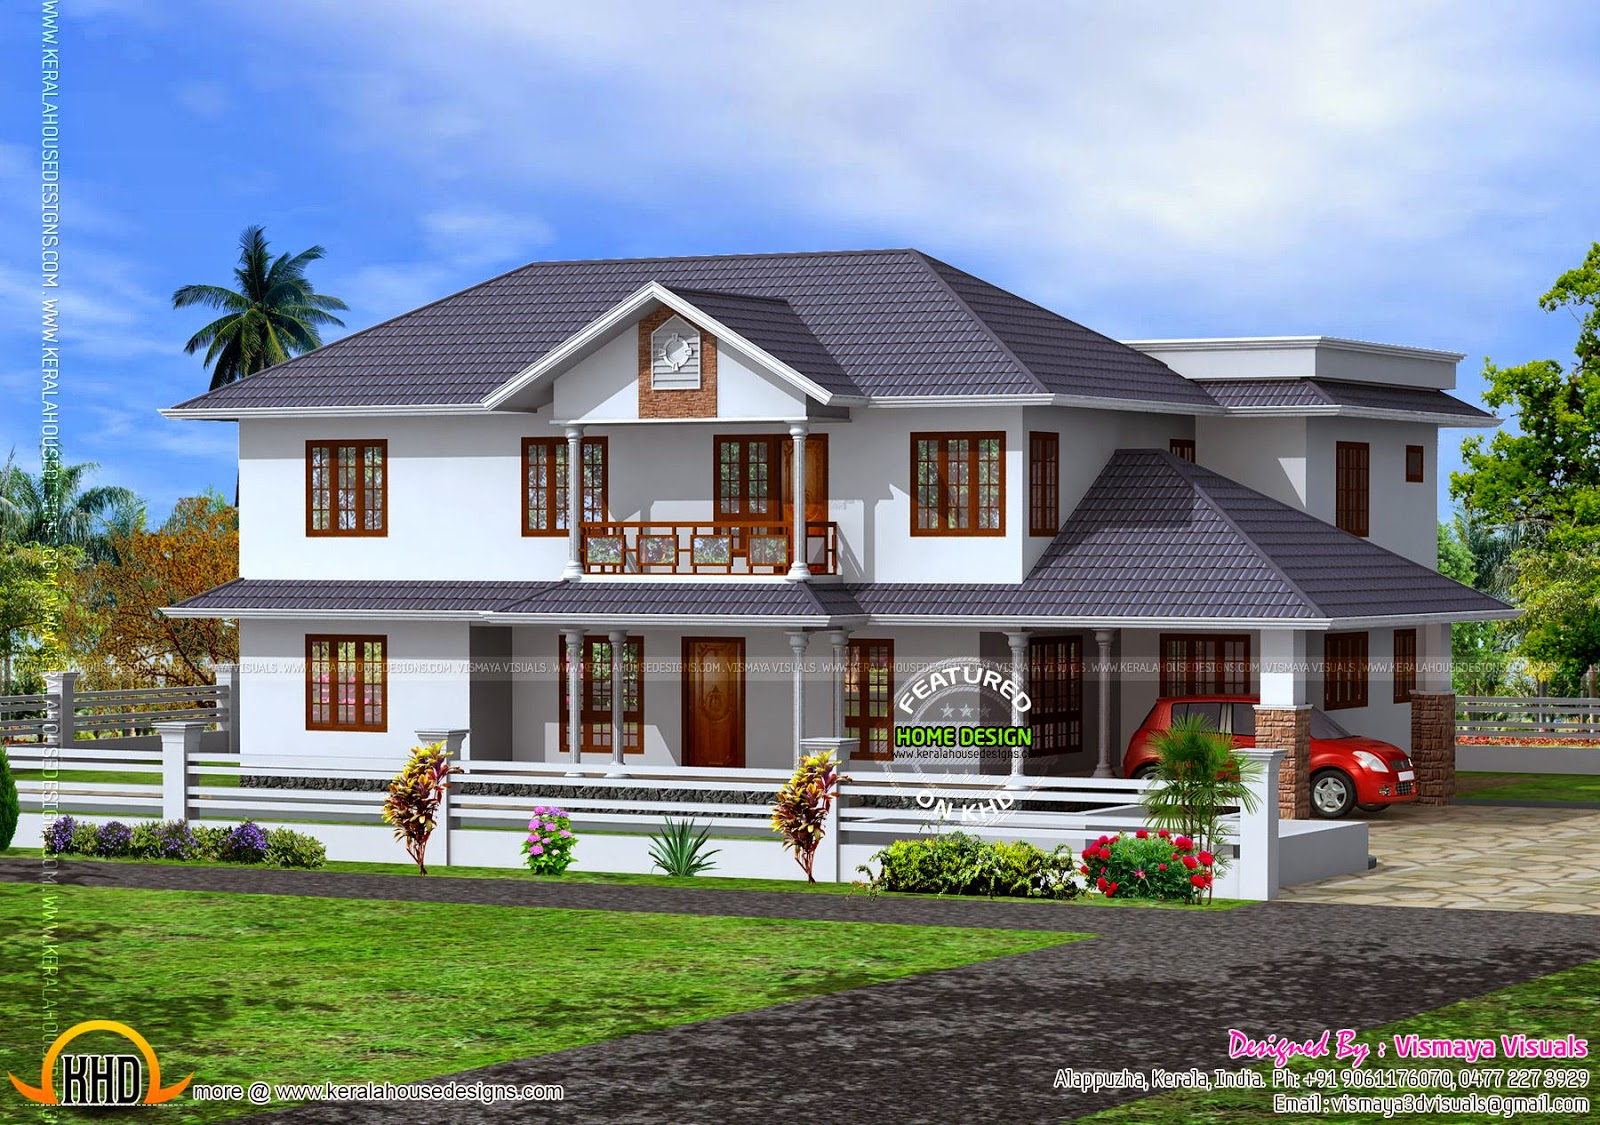 237 square meter sloping roof house kerala home design for Slanted roof house plans